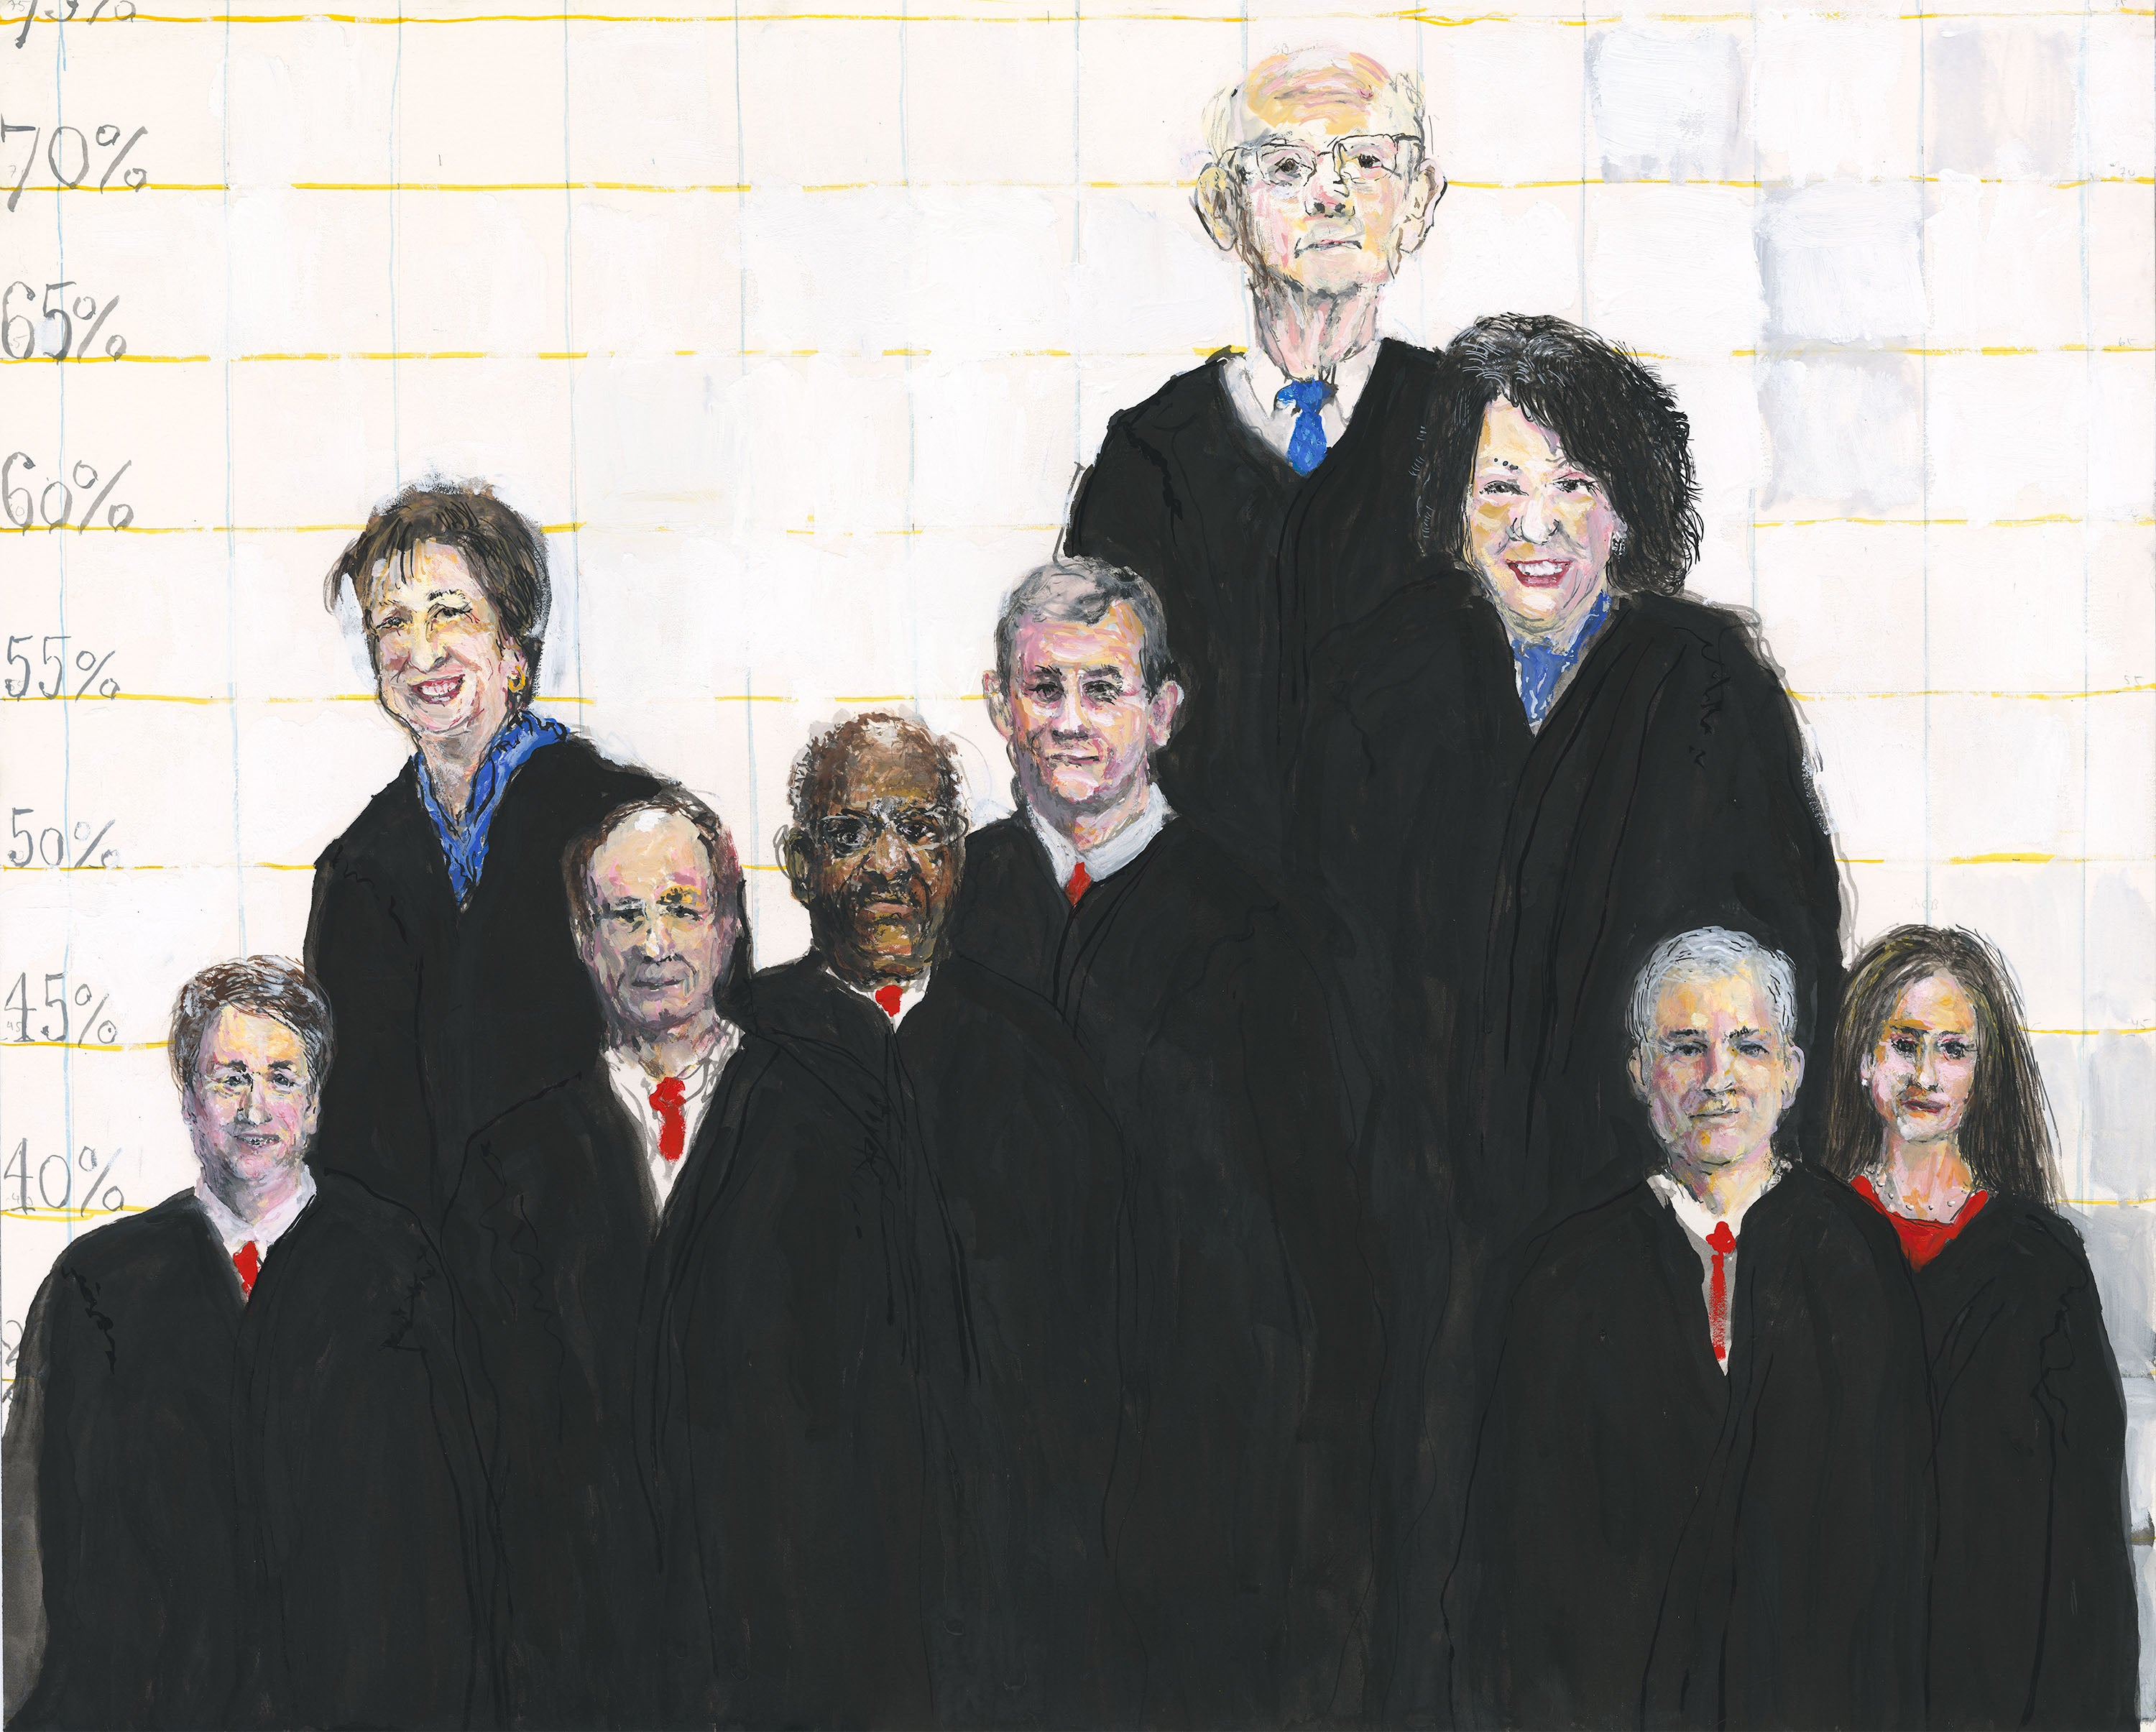 The Mismeasure of Justice - What a Truly Representative Supreme Court Would Look Like